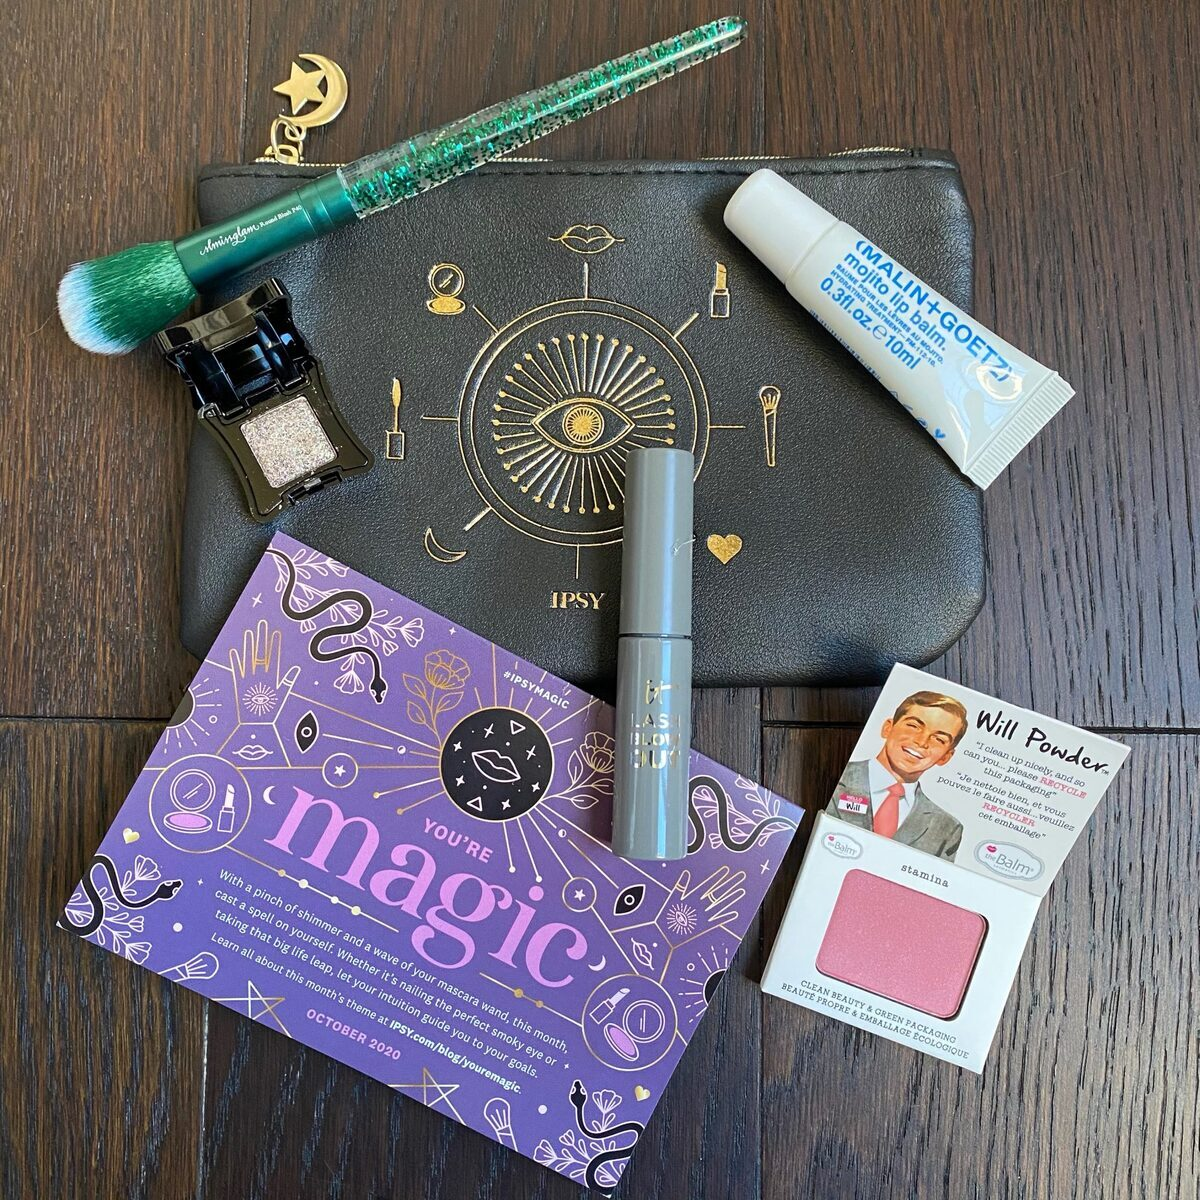 ipsy Review – October 2020